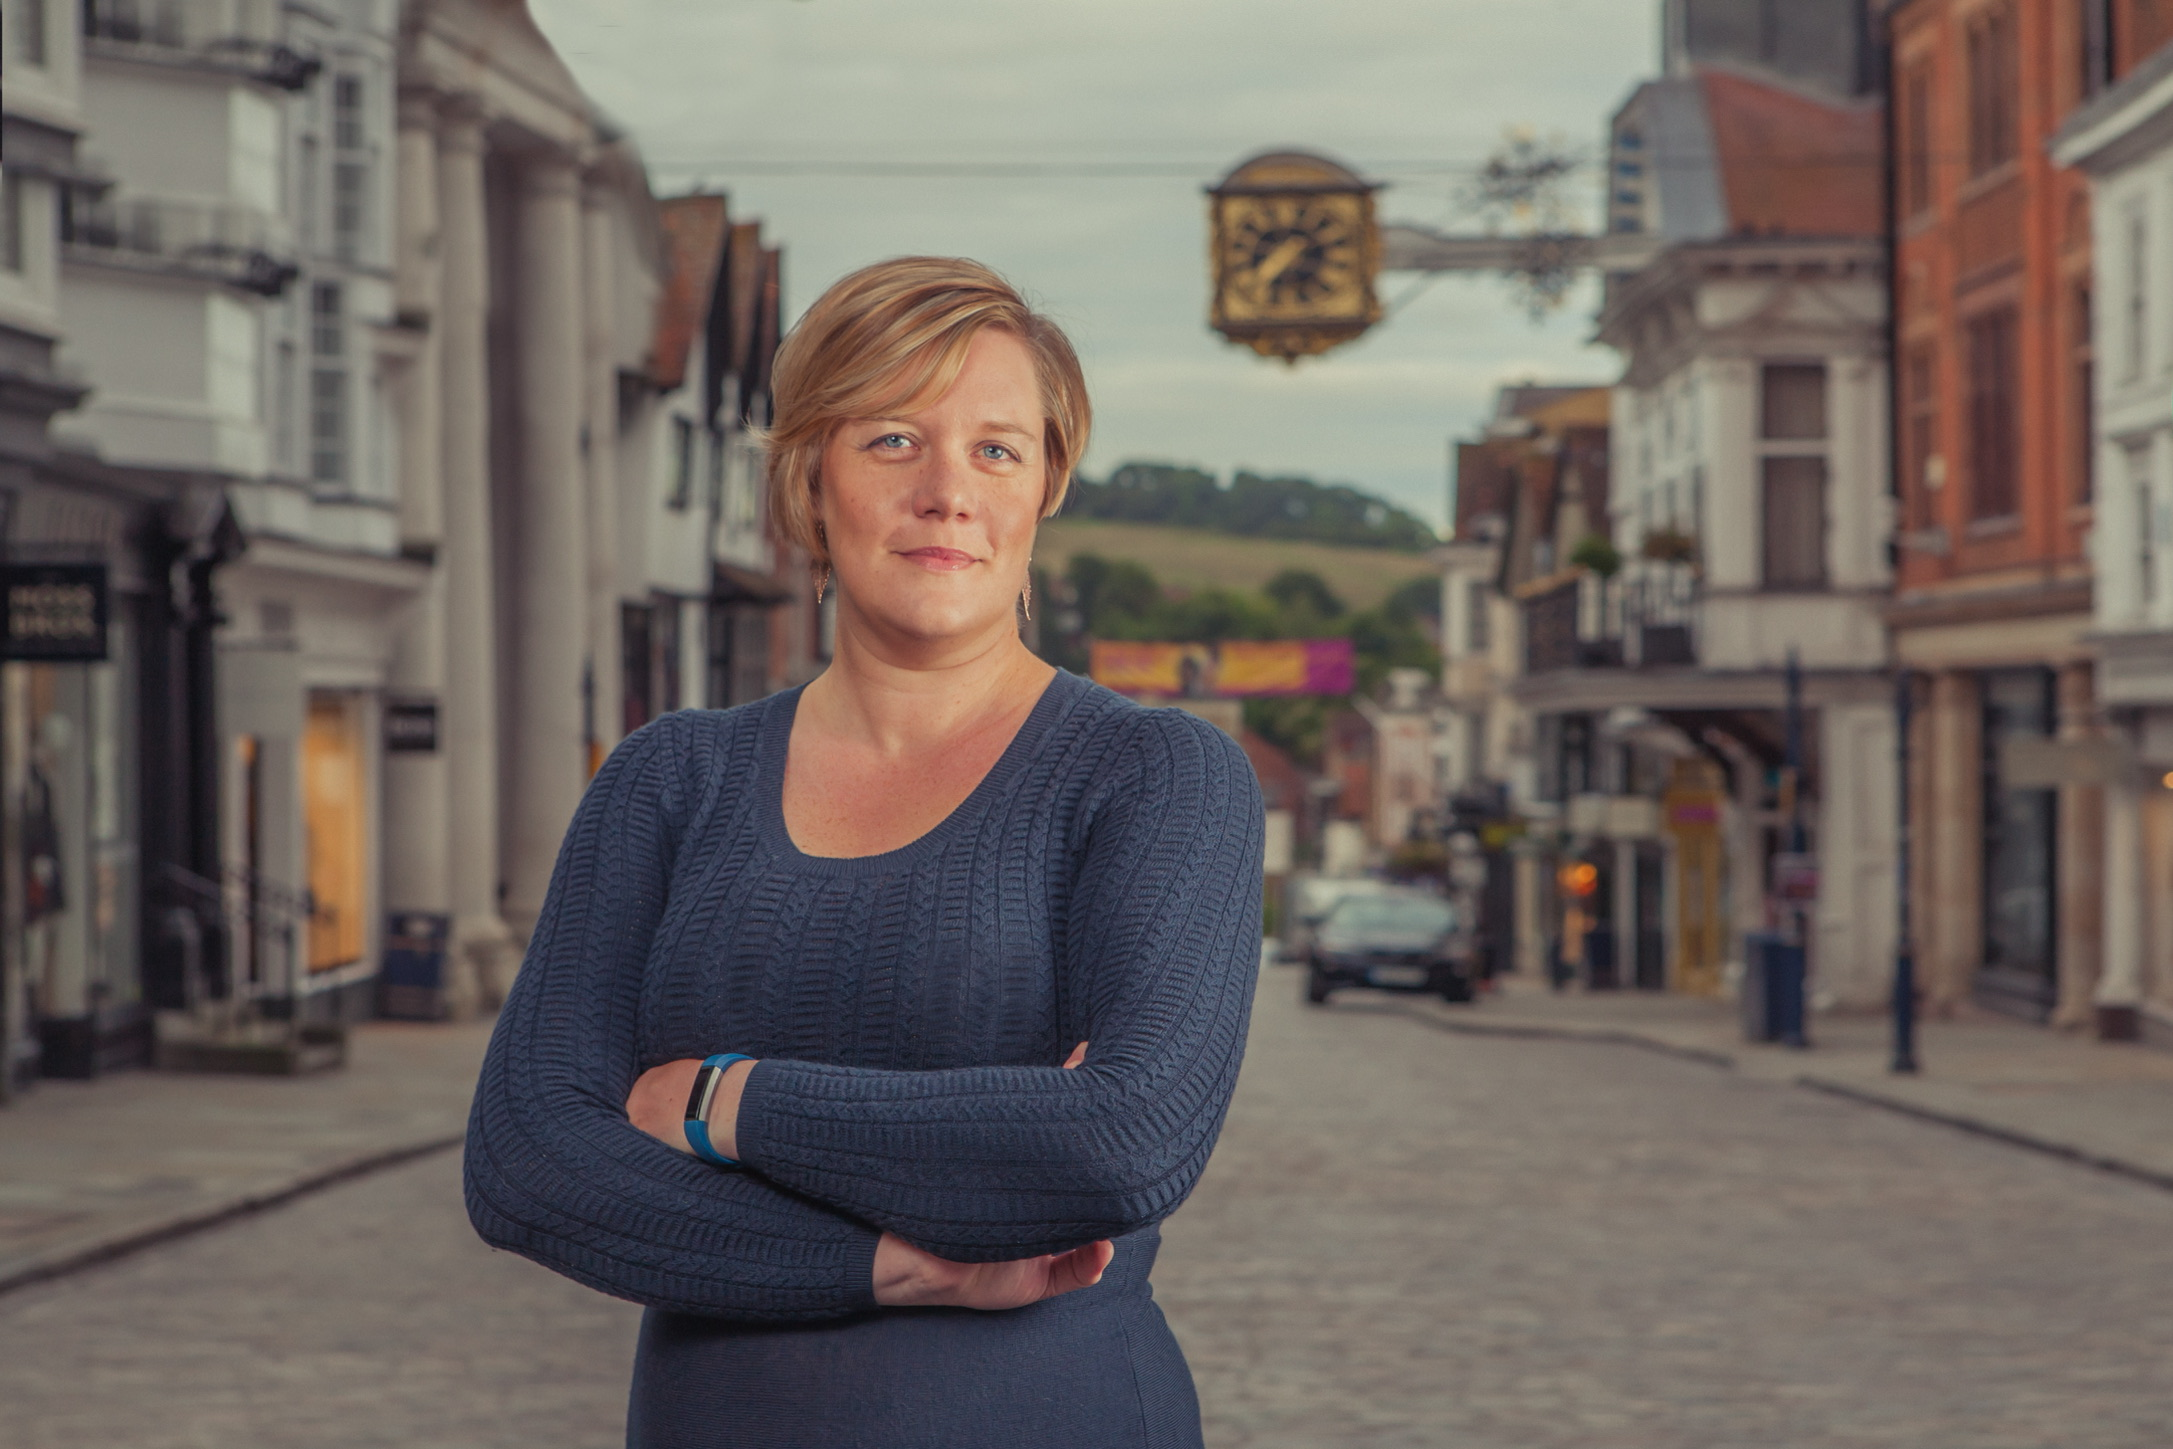 Zöe Franklin photographed standing on Guildford High Street